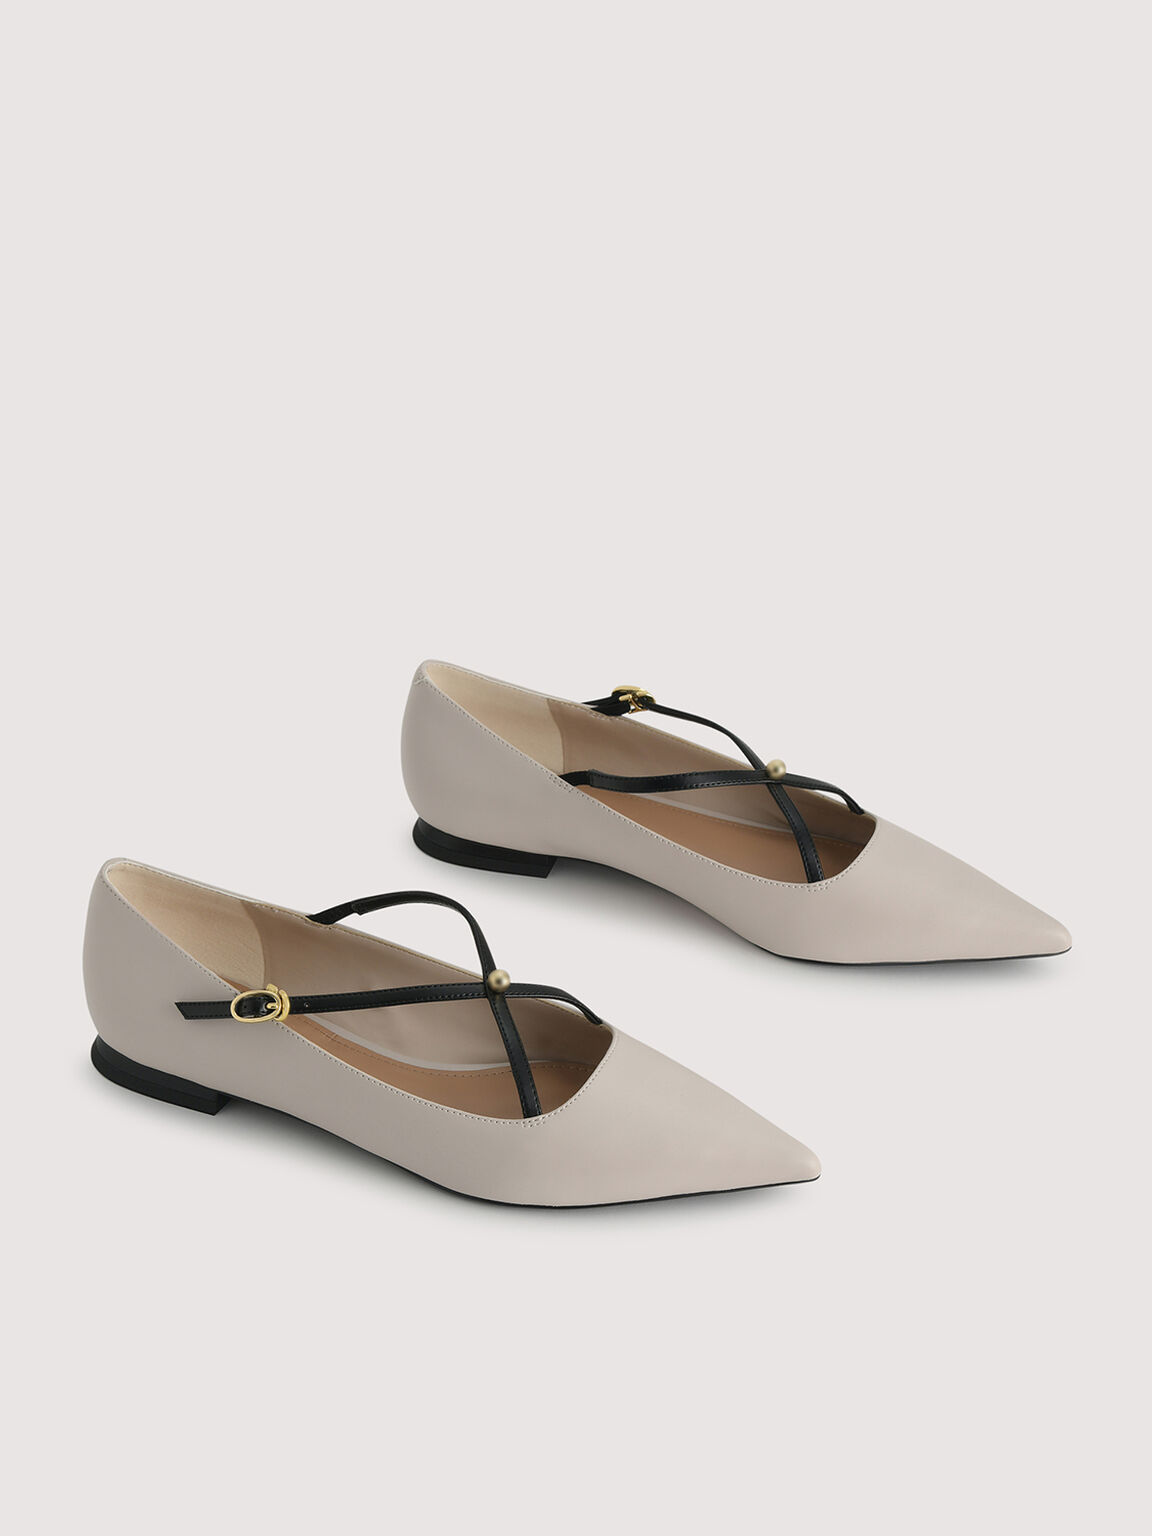 Pointed Toe Strappy Flats, Cream, hi-res